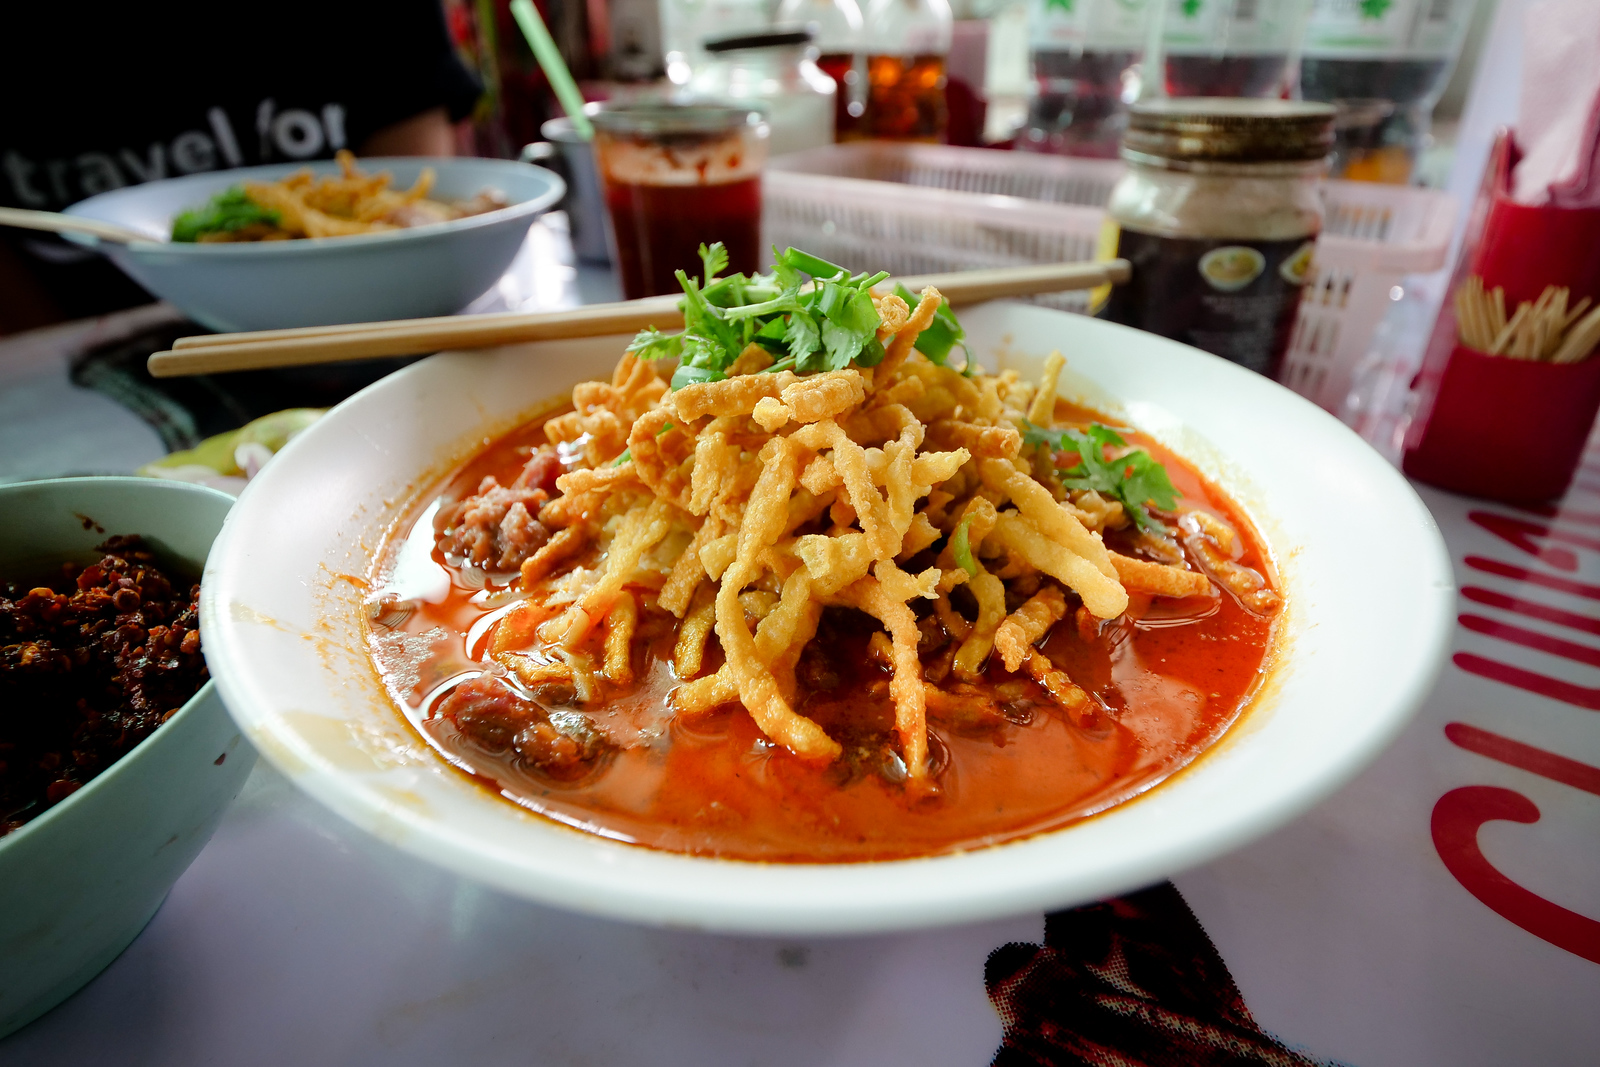 Loong Prakit's Khao Soi is just quite a looker, almost seductive with its deliciously red glistening and oily curry broth